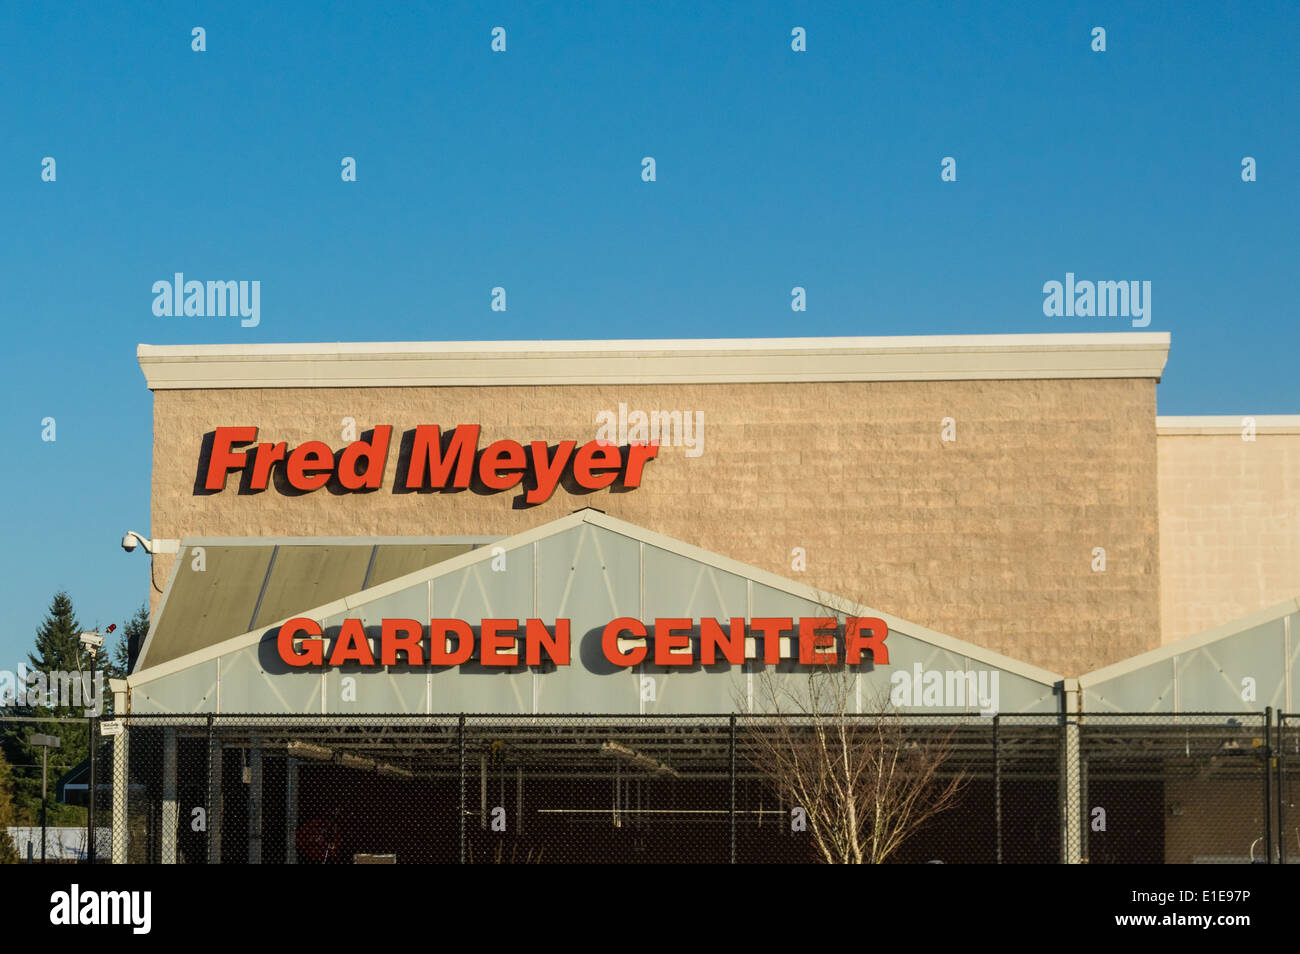 Fred Meyer Is A Large Grocery Chain Store That Also Operates Garden Centers.  Sandy,